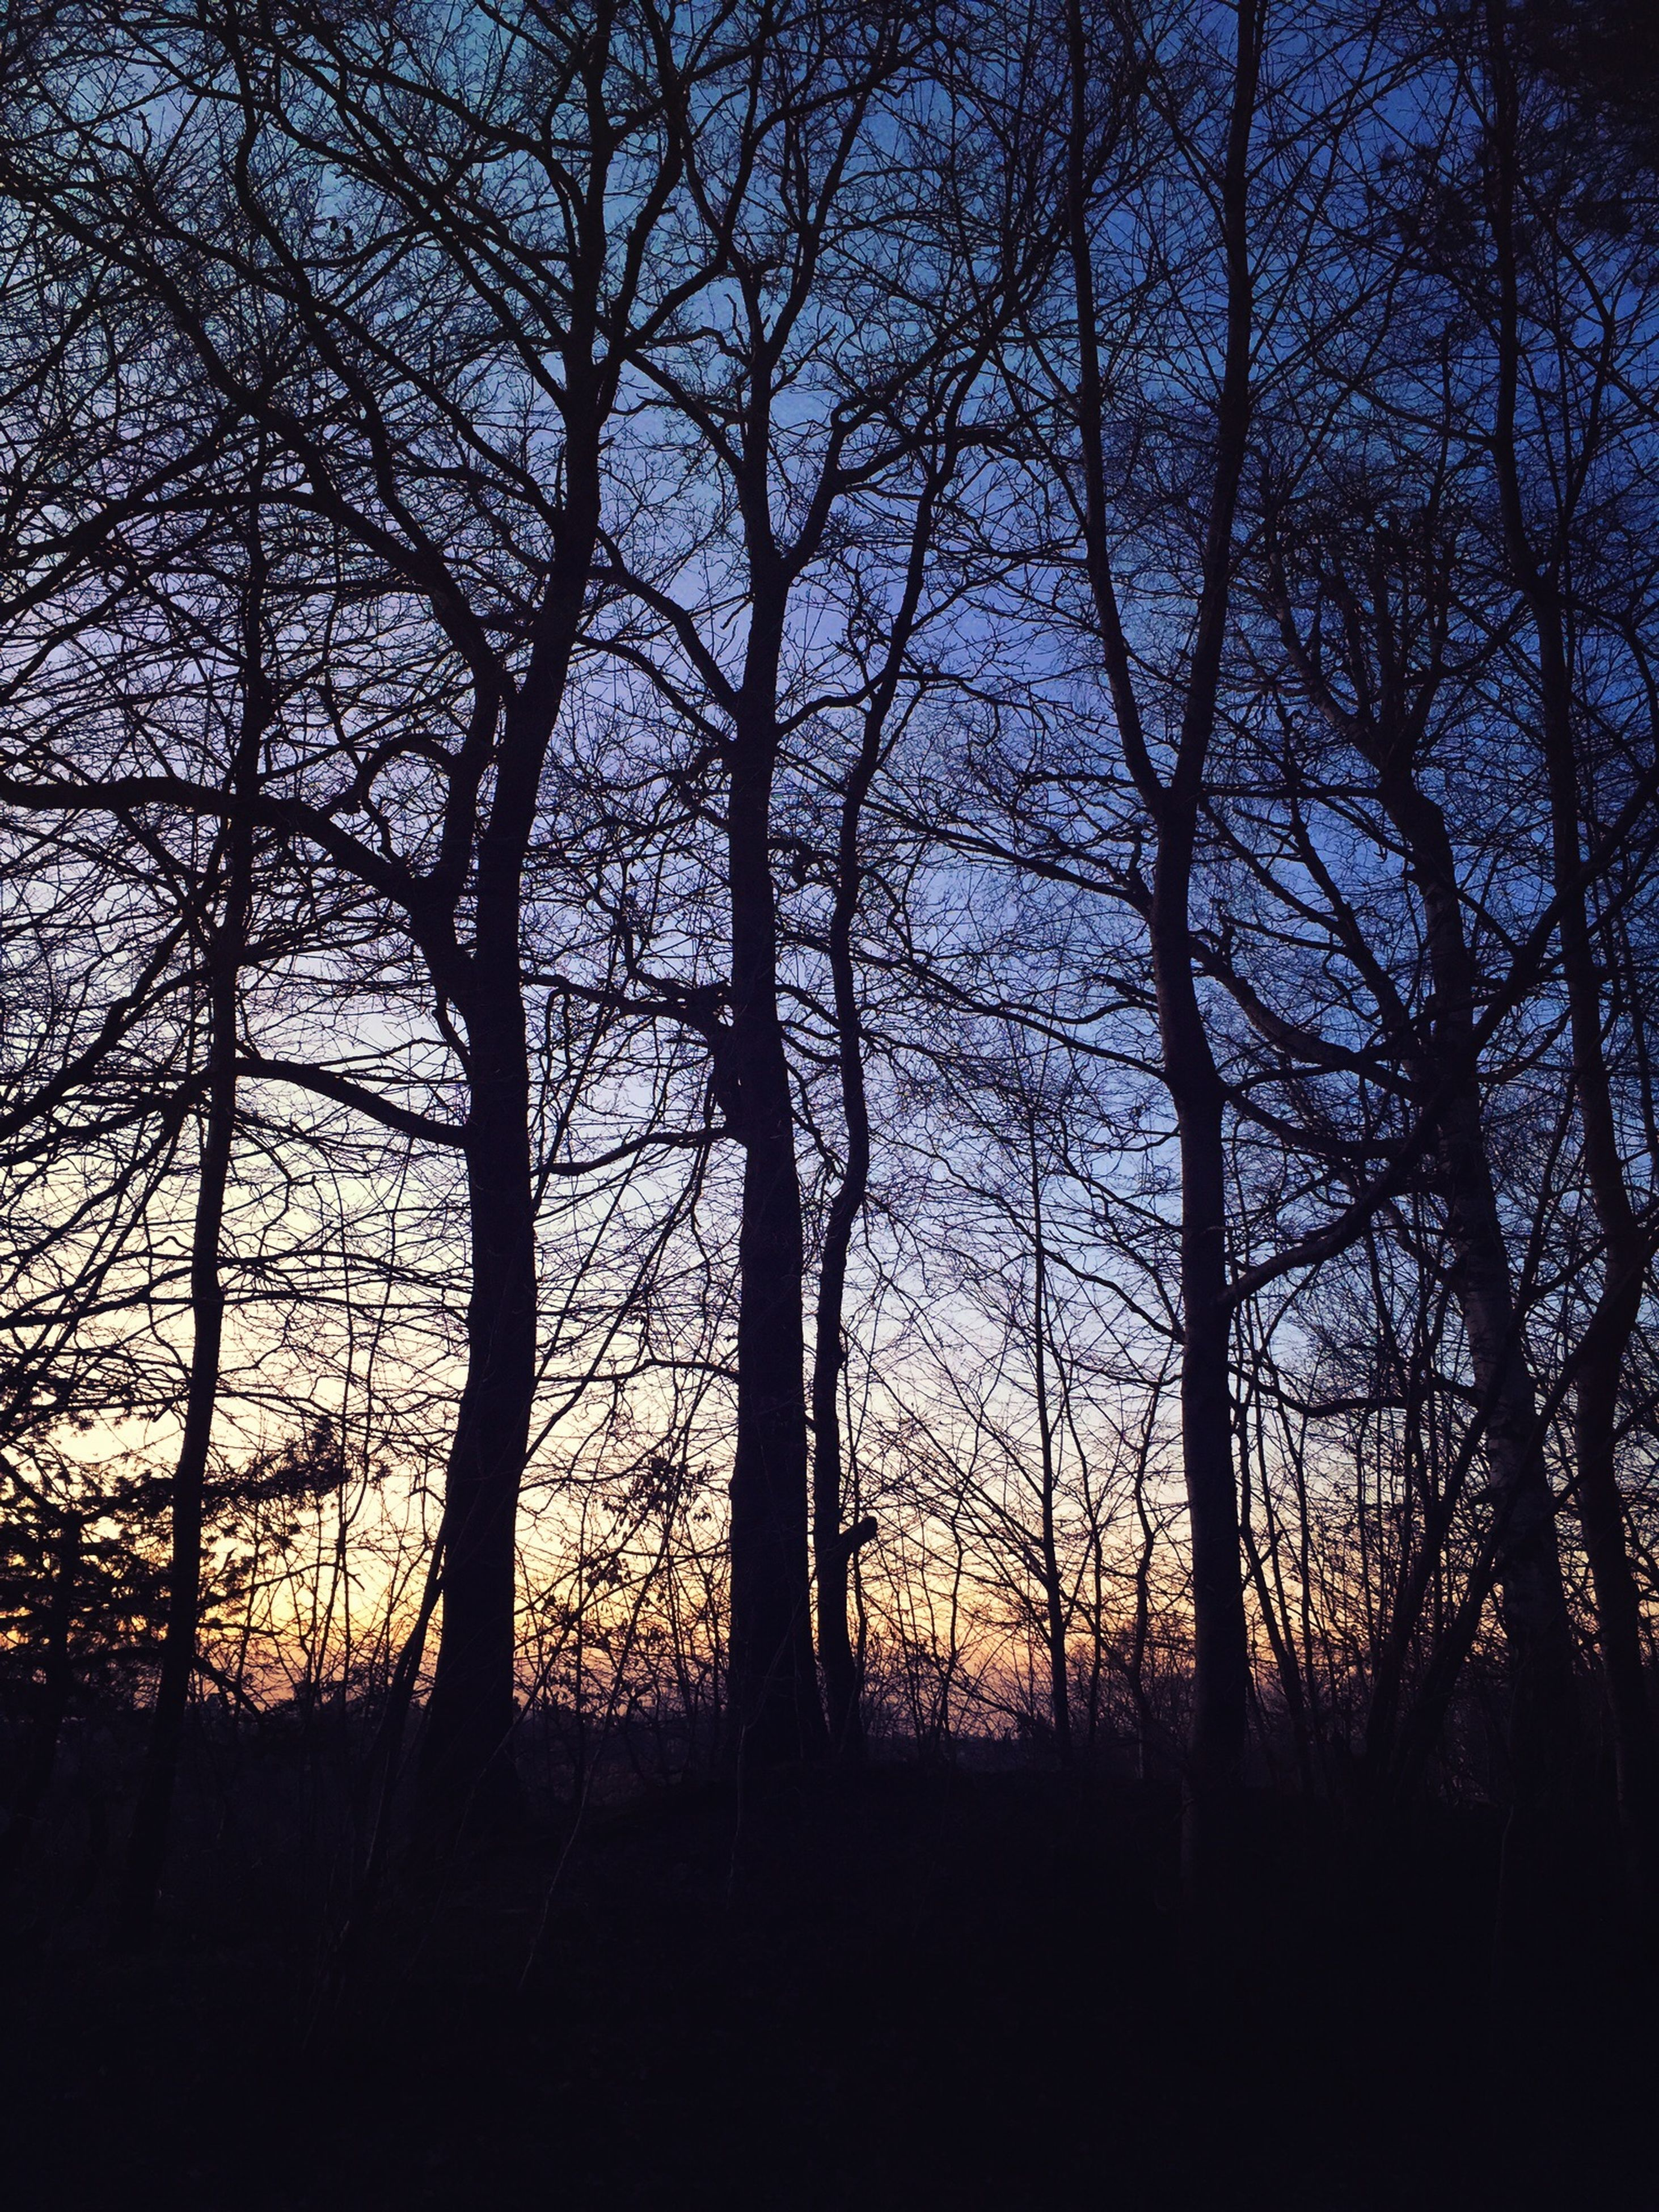 tree, silhouette, tranquility, bare tree, tranquil scene, sunset, scenics, beauty in nature, branch, nature, sky, tree trunk, landscape, growth, idyllic, forest, non-urban scene, outdoors, dark, no people